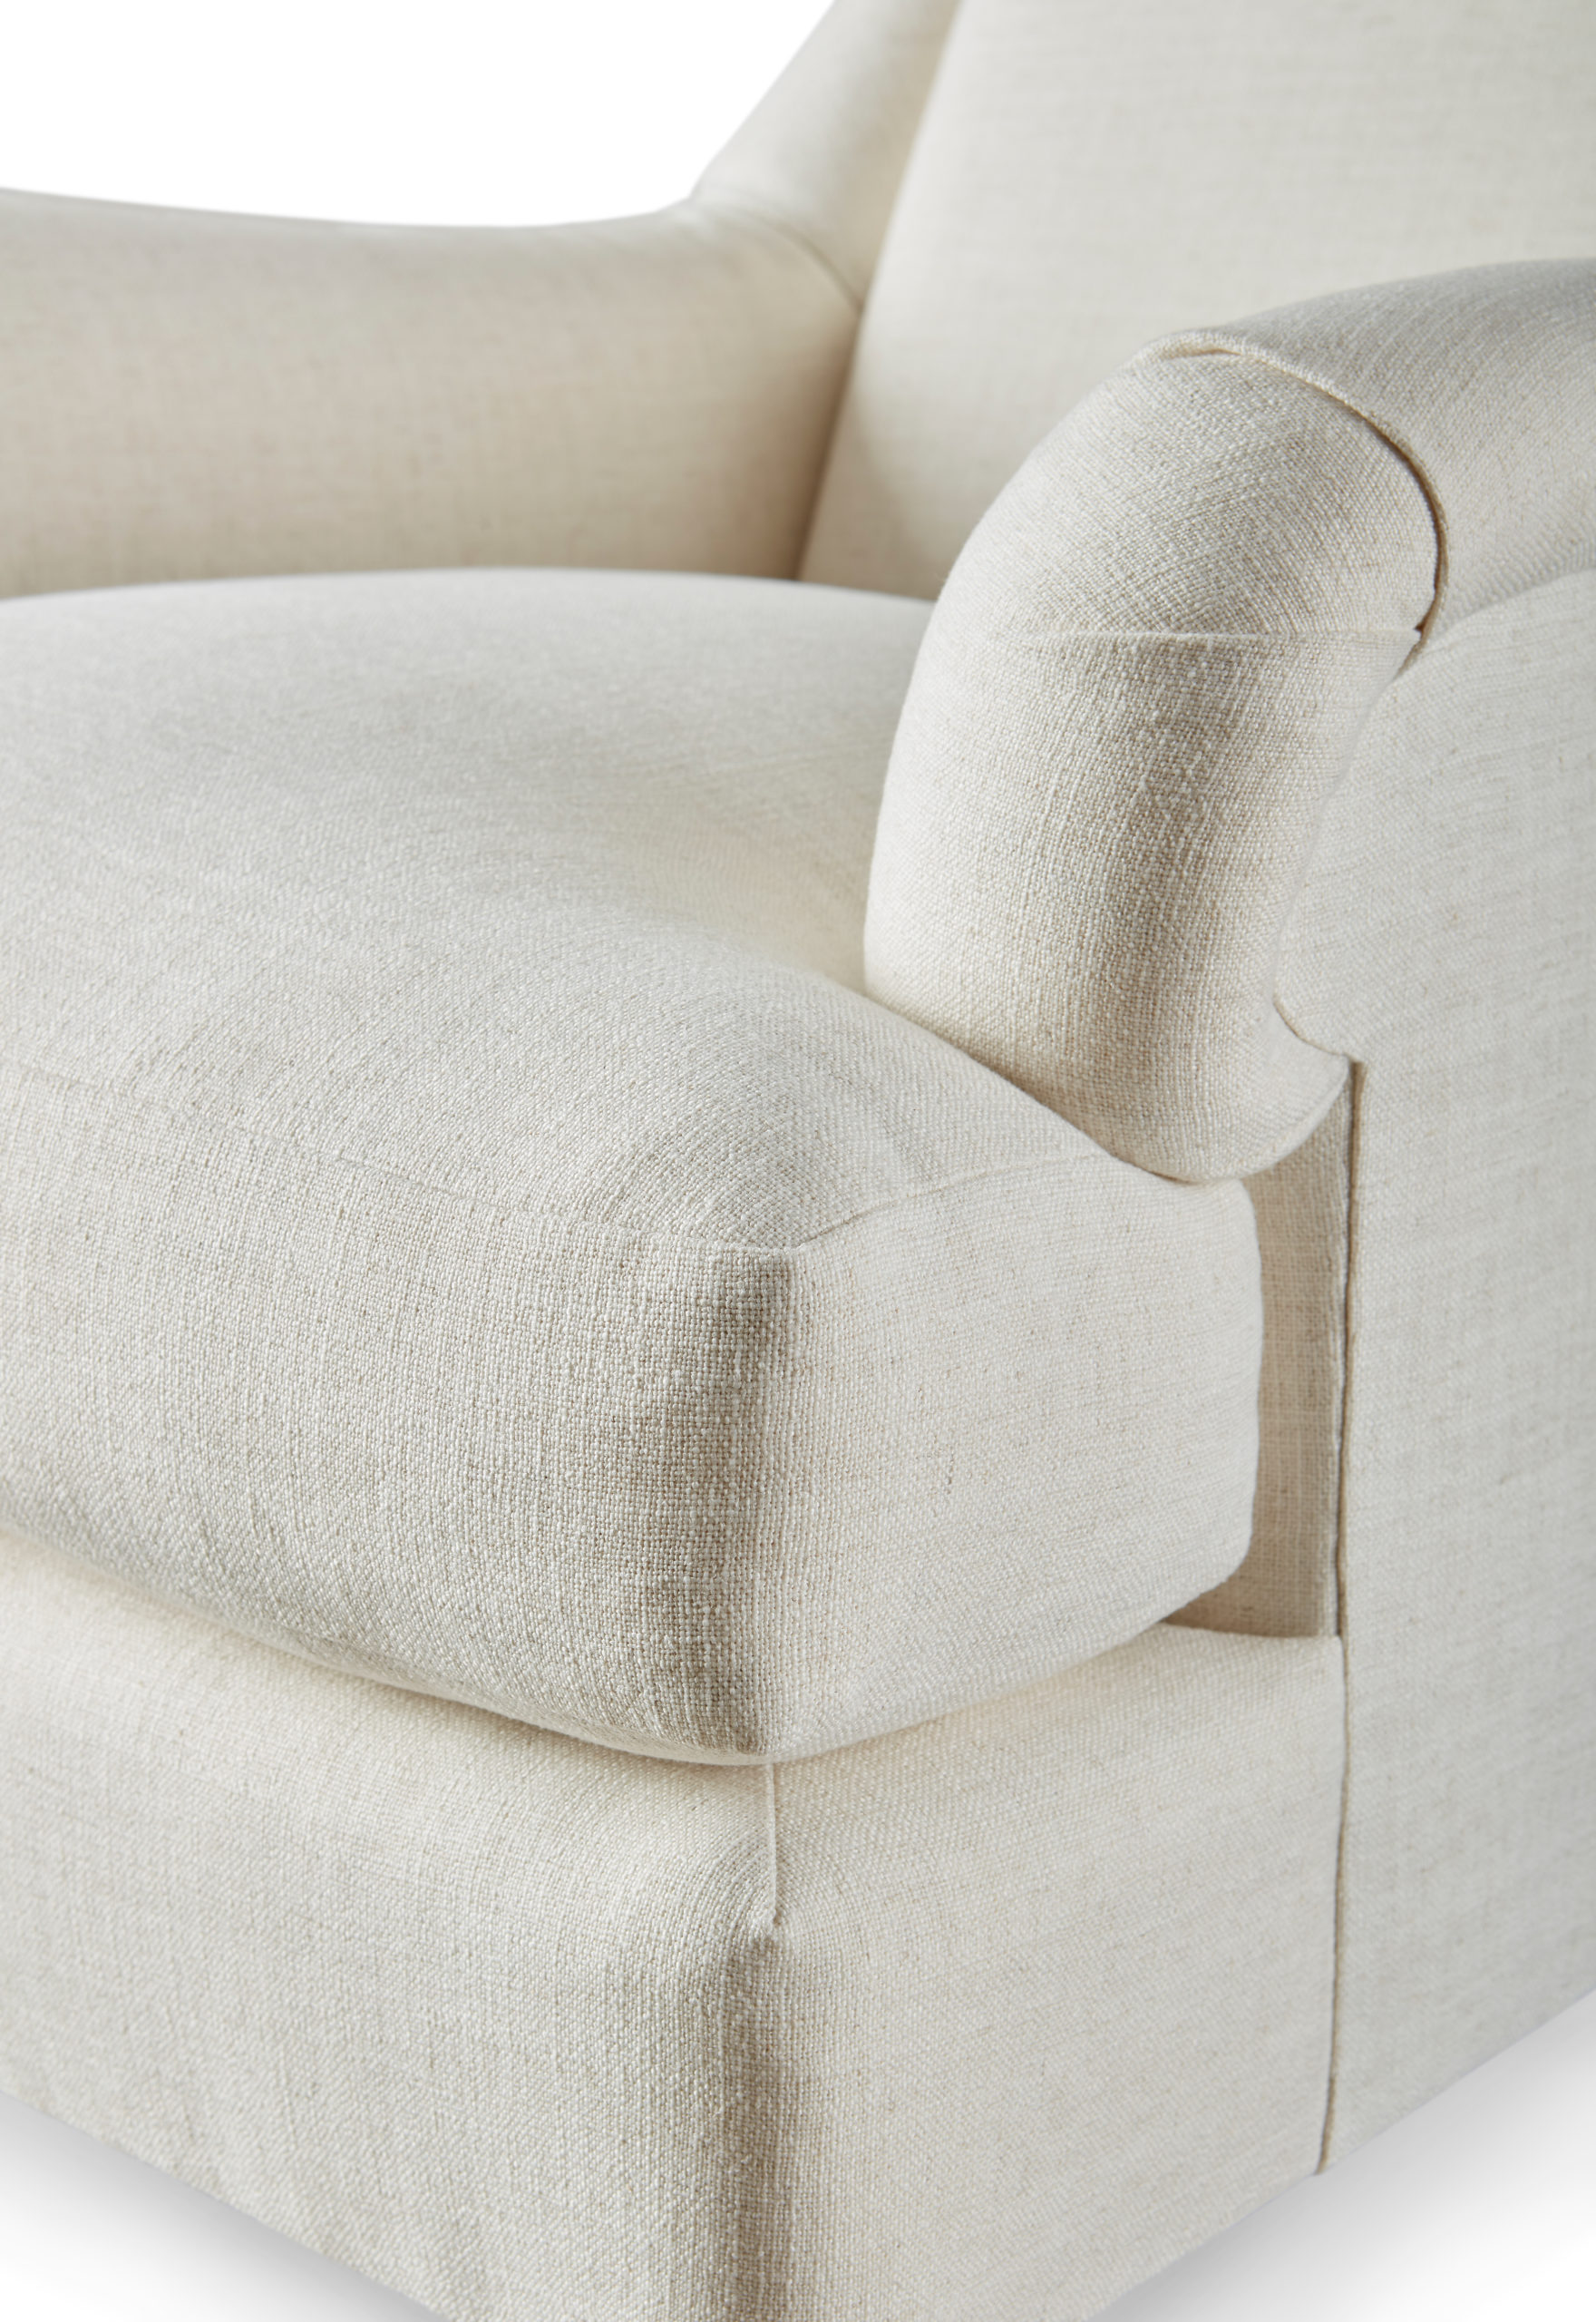 Baker_products_WNWN_derby_lounge_chair_BAU3112c_DETAIL-scaled-1